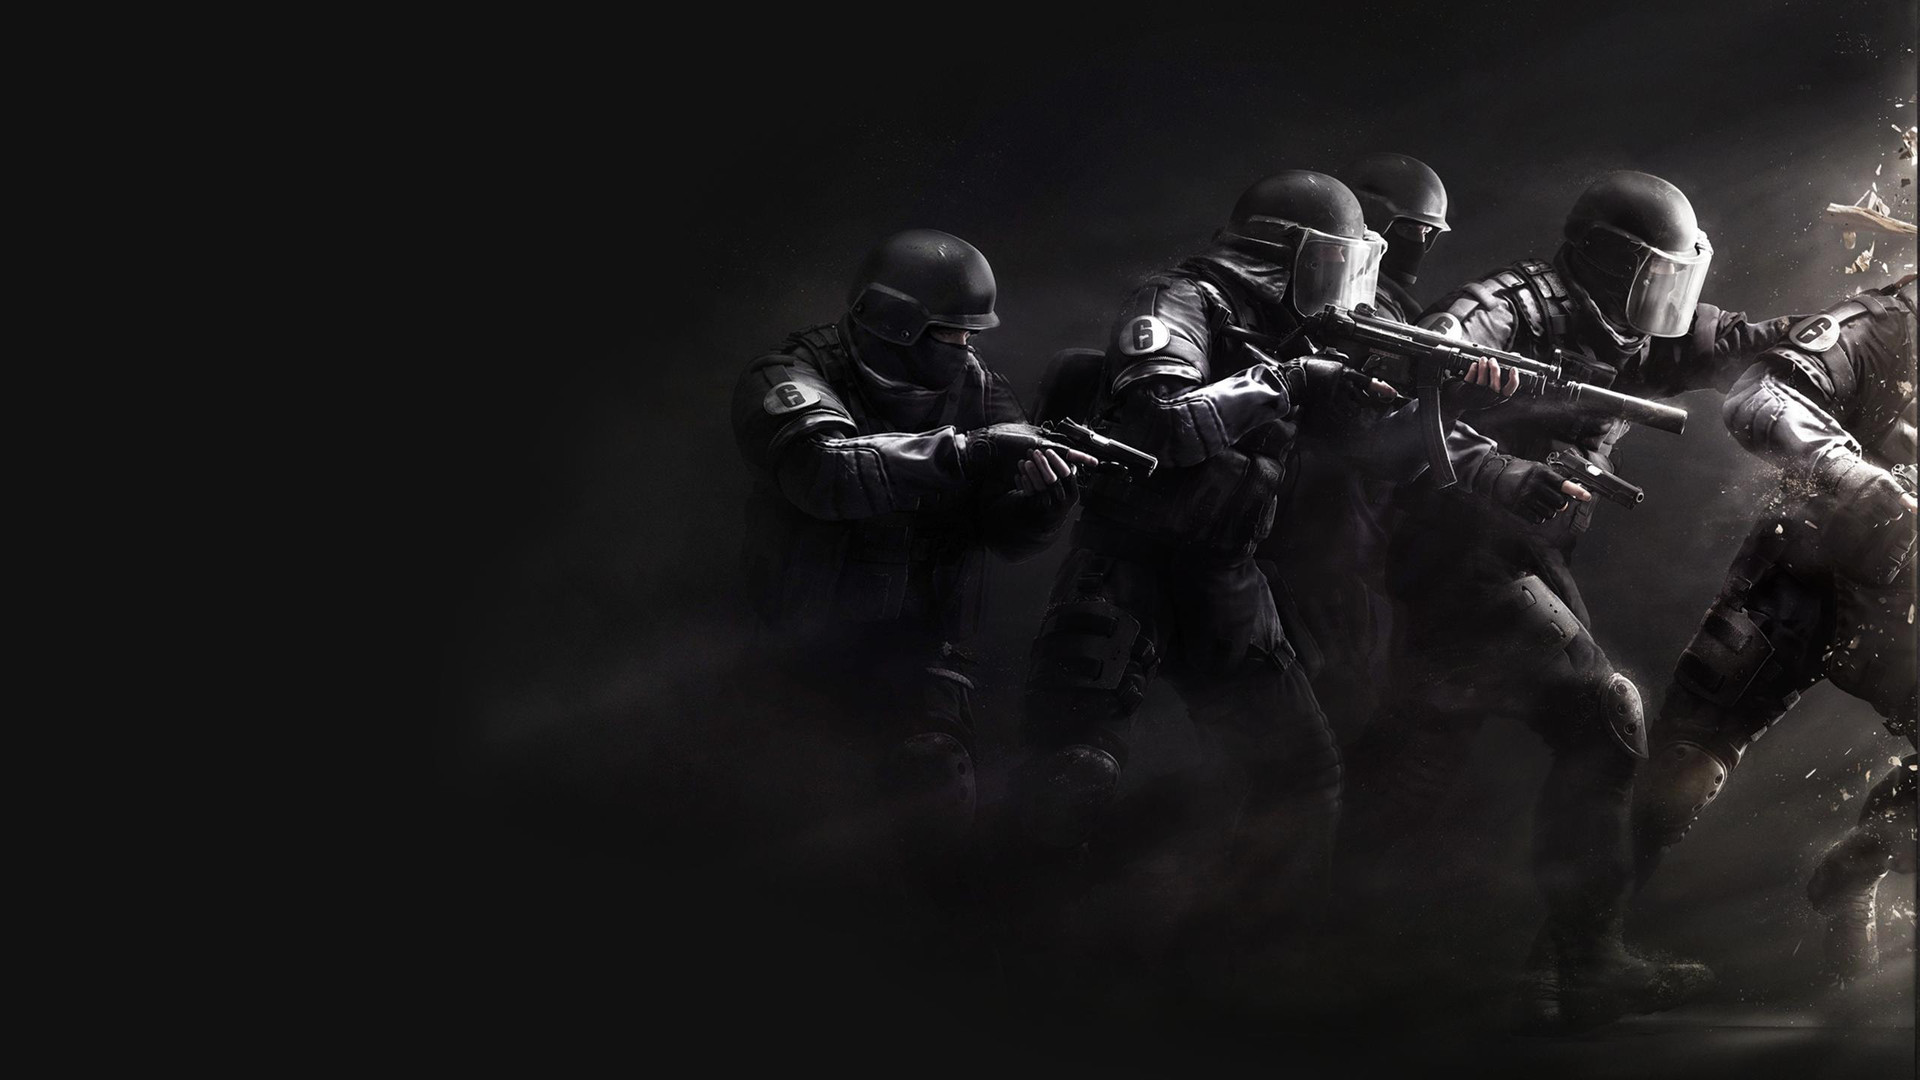 5656760-counter-strike-hd-wallpapers.jpg